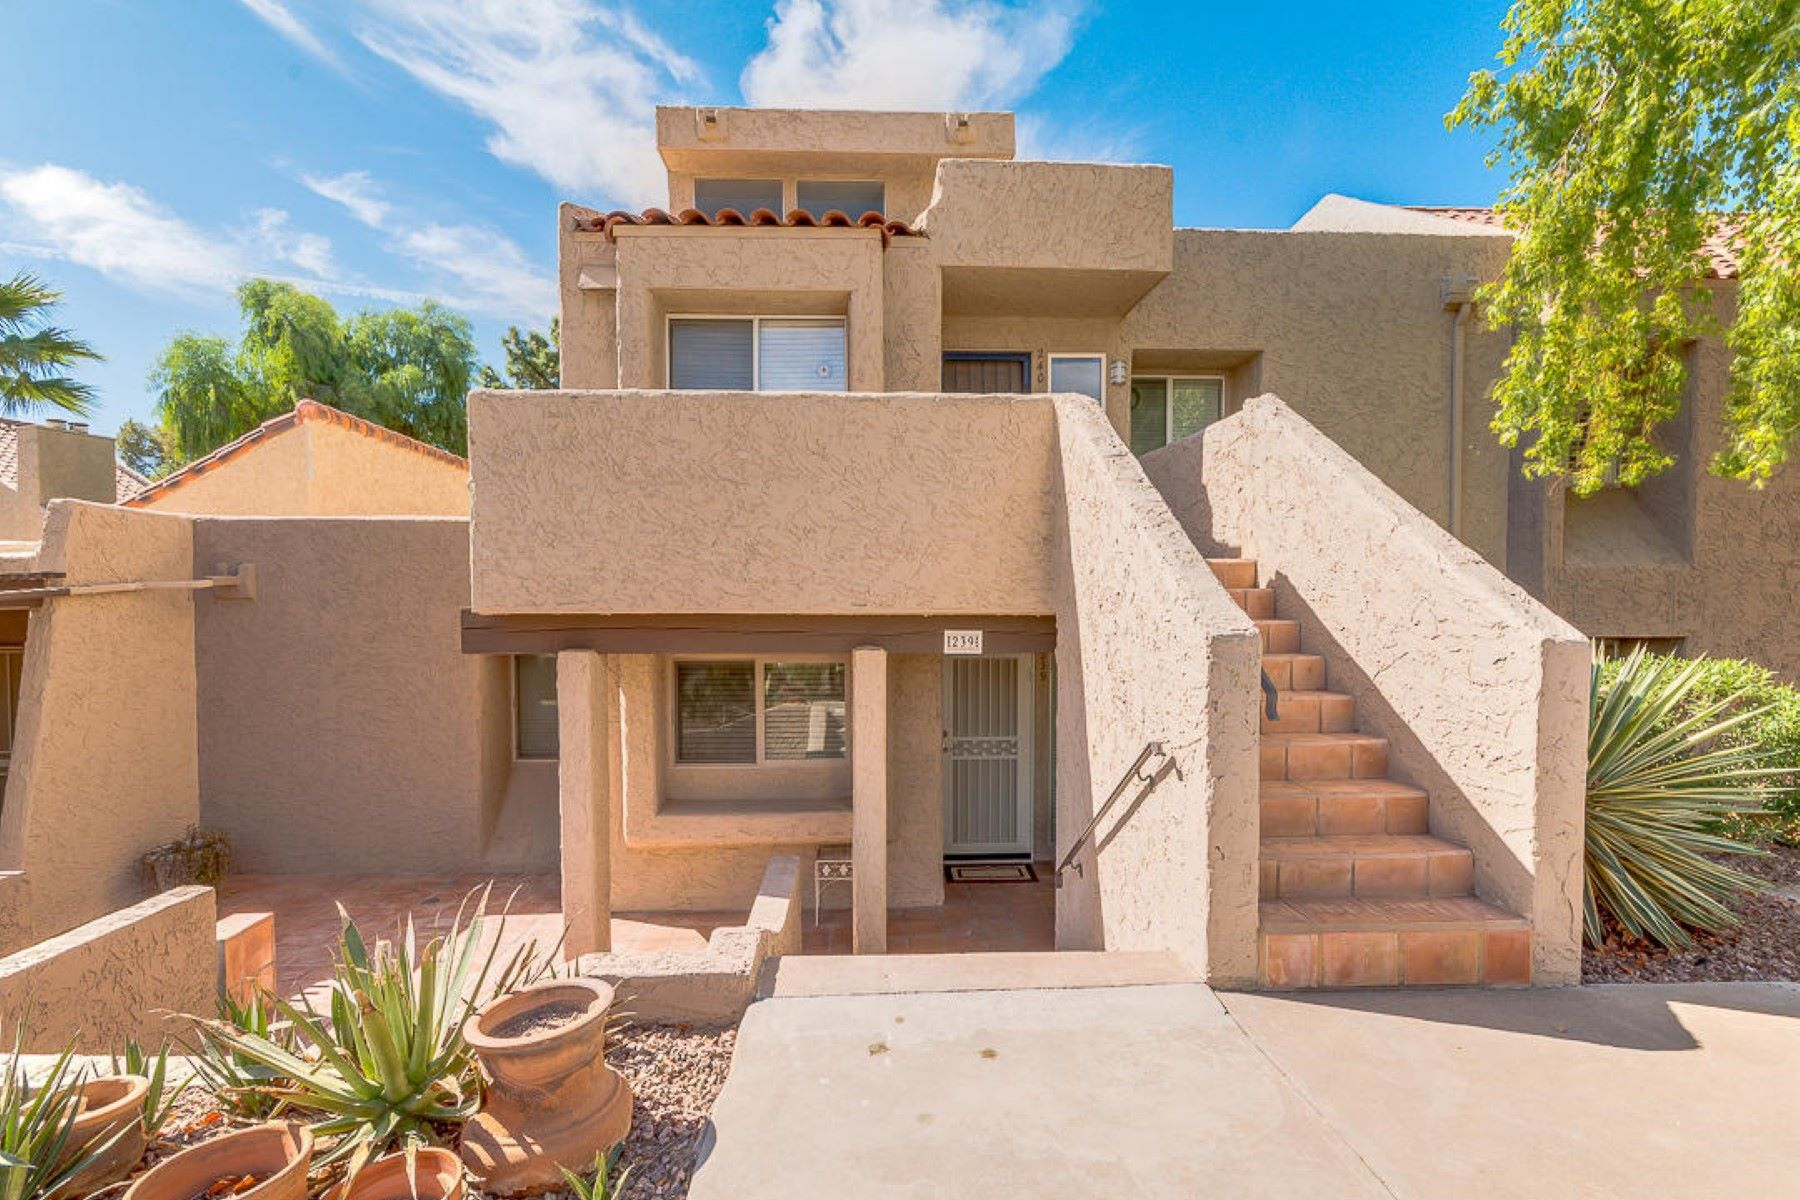 Townhouse for Rent at Fantastic Furnished Single level townhome 7340 N VIA CAMELLO DEL NORTE ST 239, Scottsdale, Arizona 85258 United States